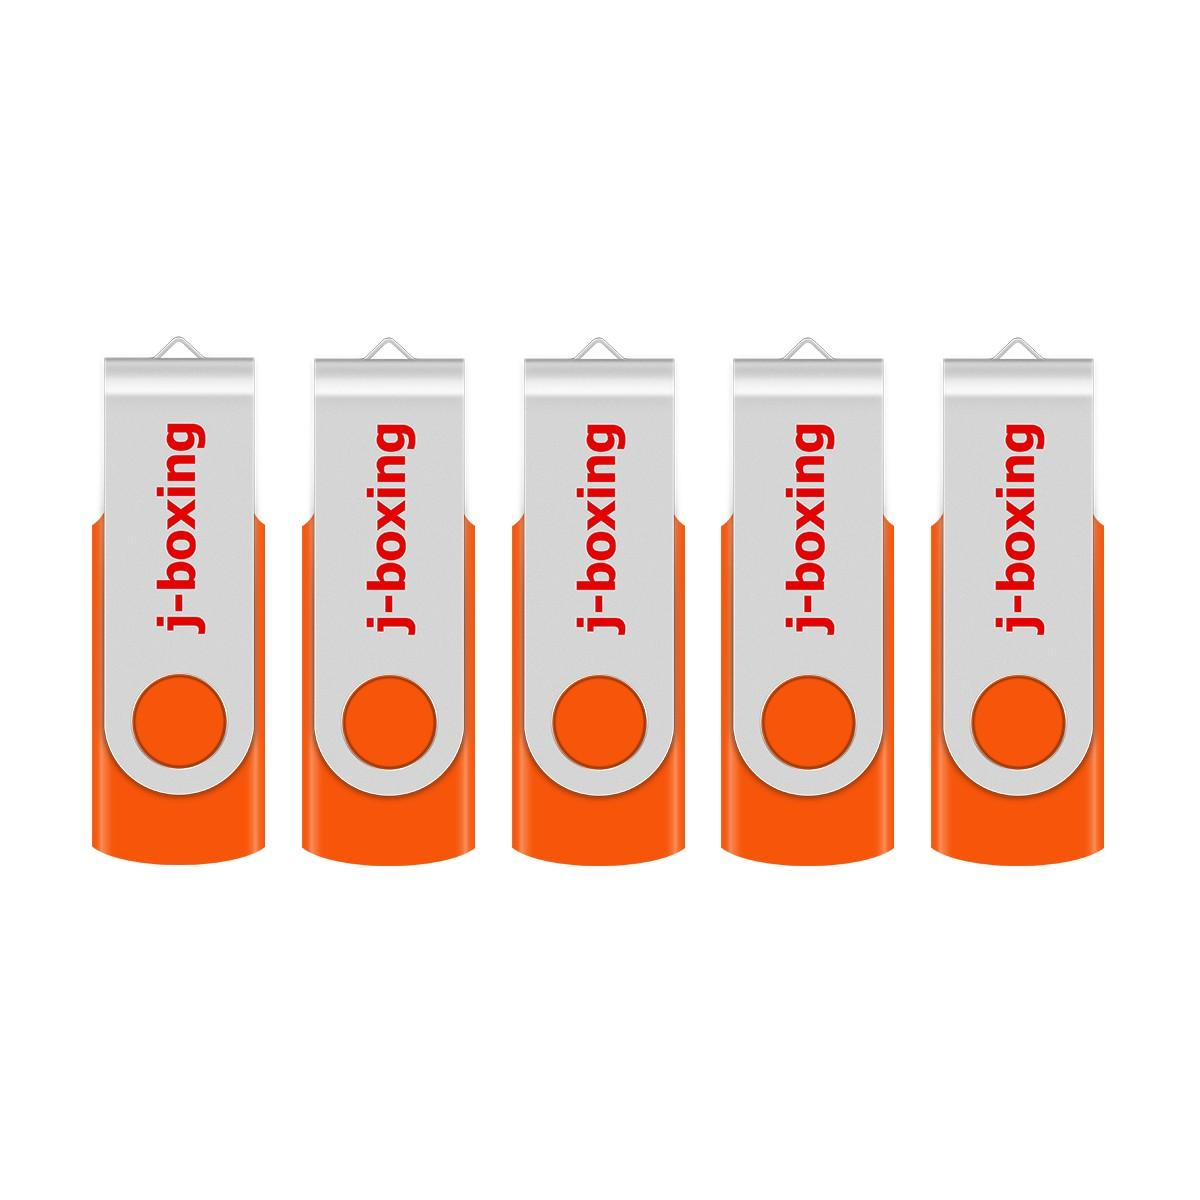 Orange 5PCS/LOT 1G 2G 4G 8G 16G 32G 64G Rotating USB Flash Drives Flash Pen Drive High Speed Memory Stick Storage for PC Laptop Macbook